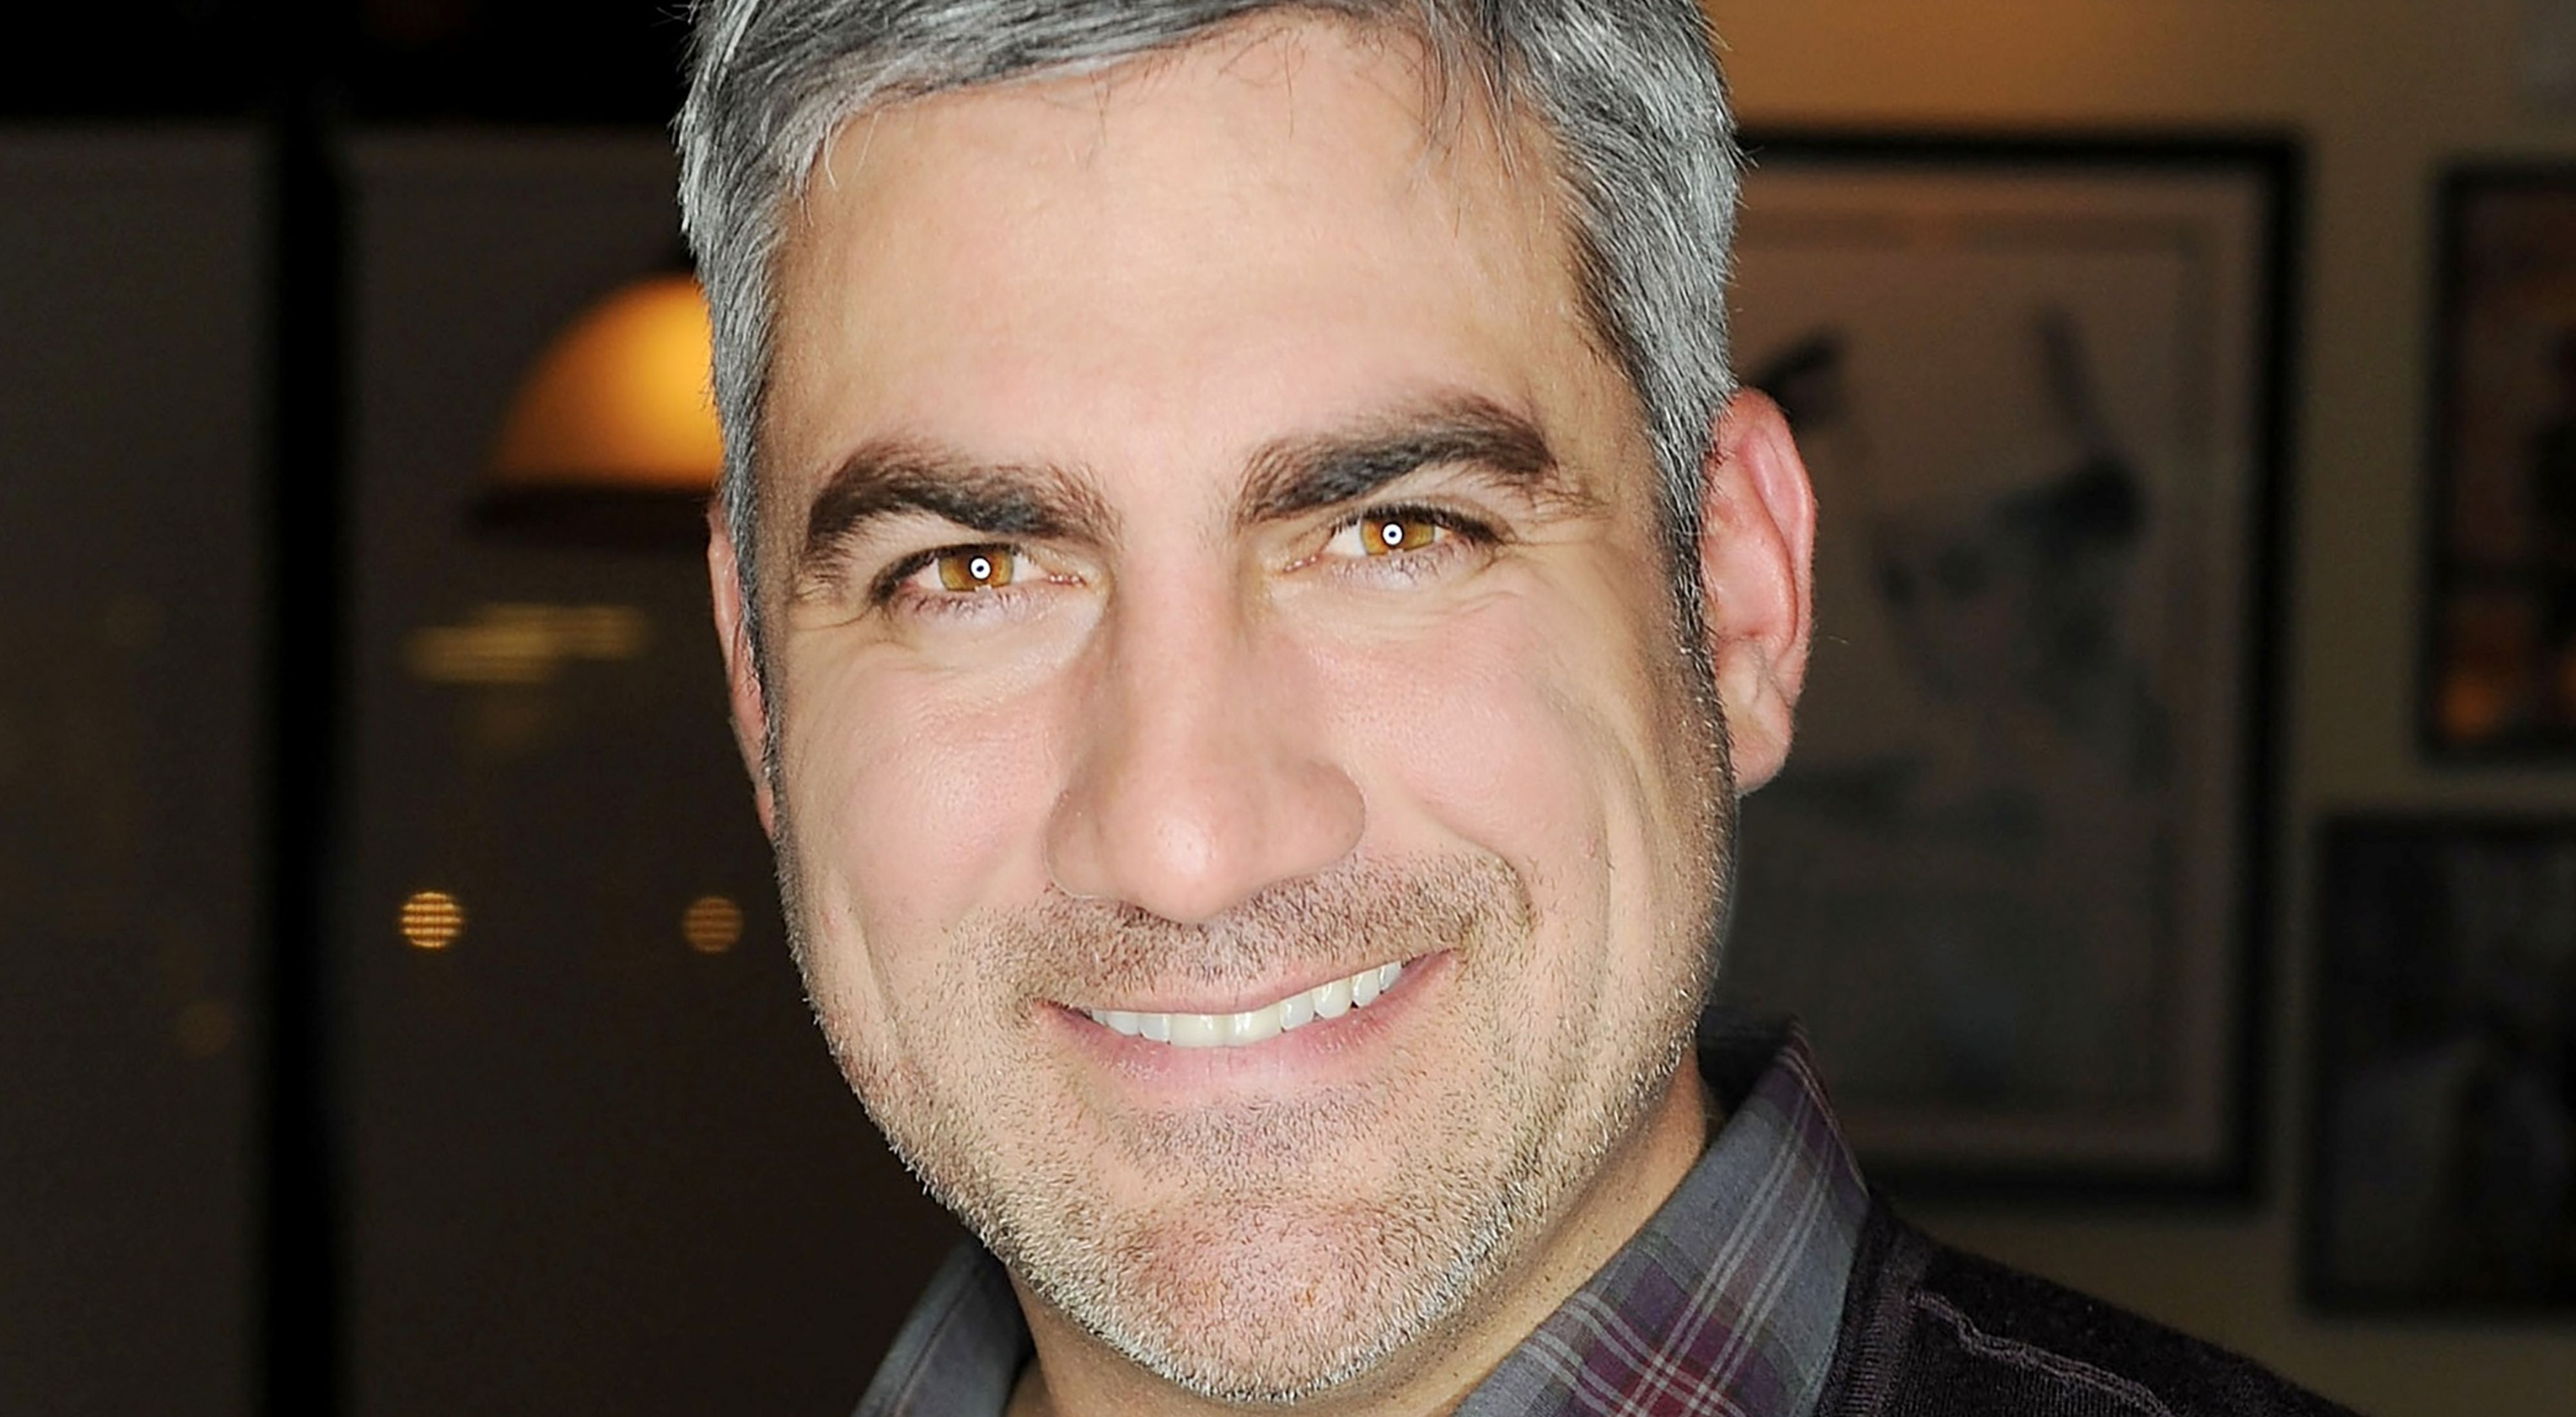 If Trees Could Sing - Taylor Hicks & Sweetbay Magnolia